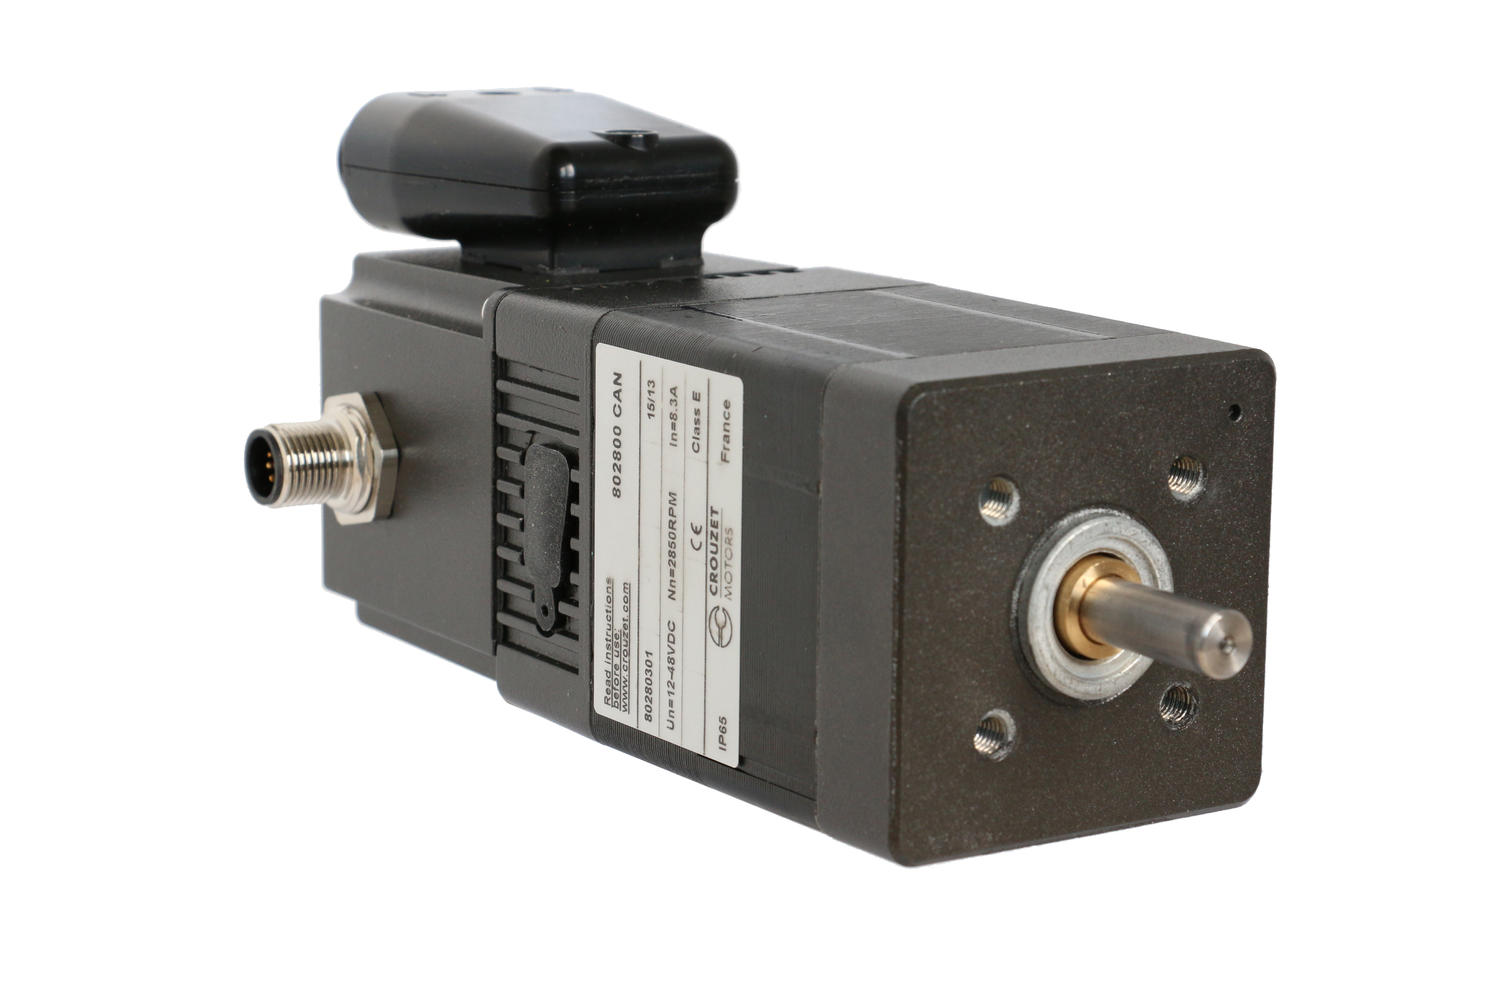 BLDC SQ57 motor with integrated SMi21 CANopen drive